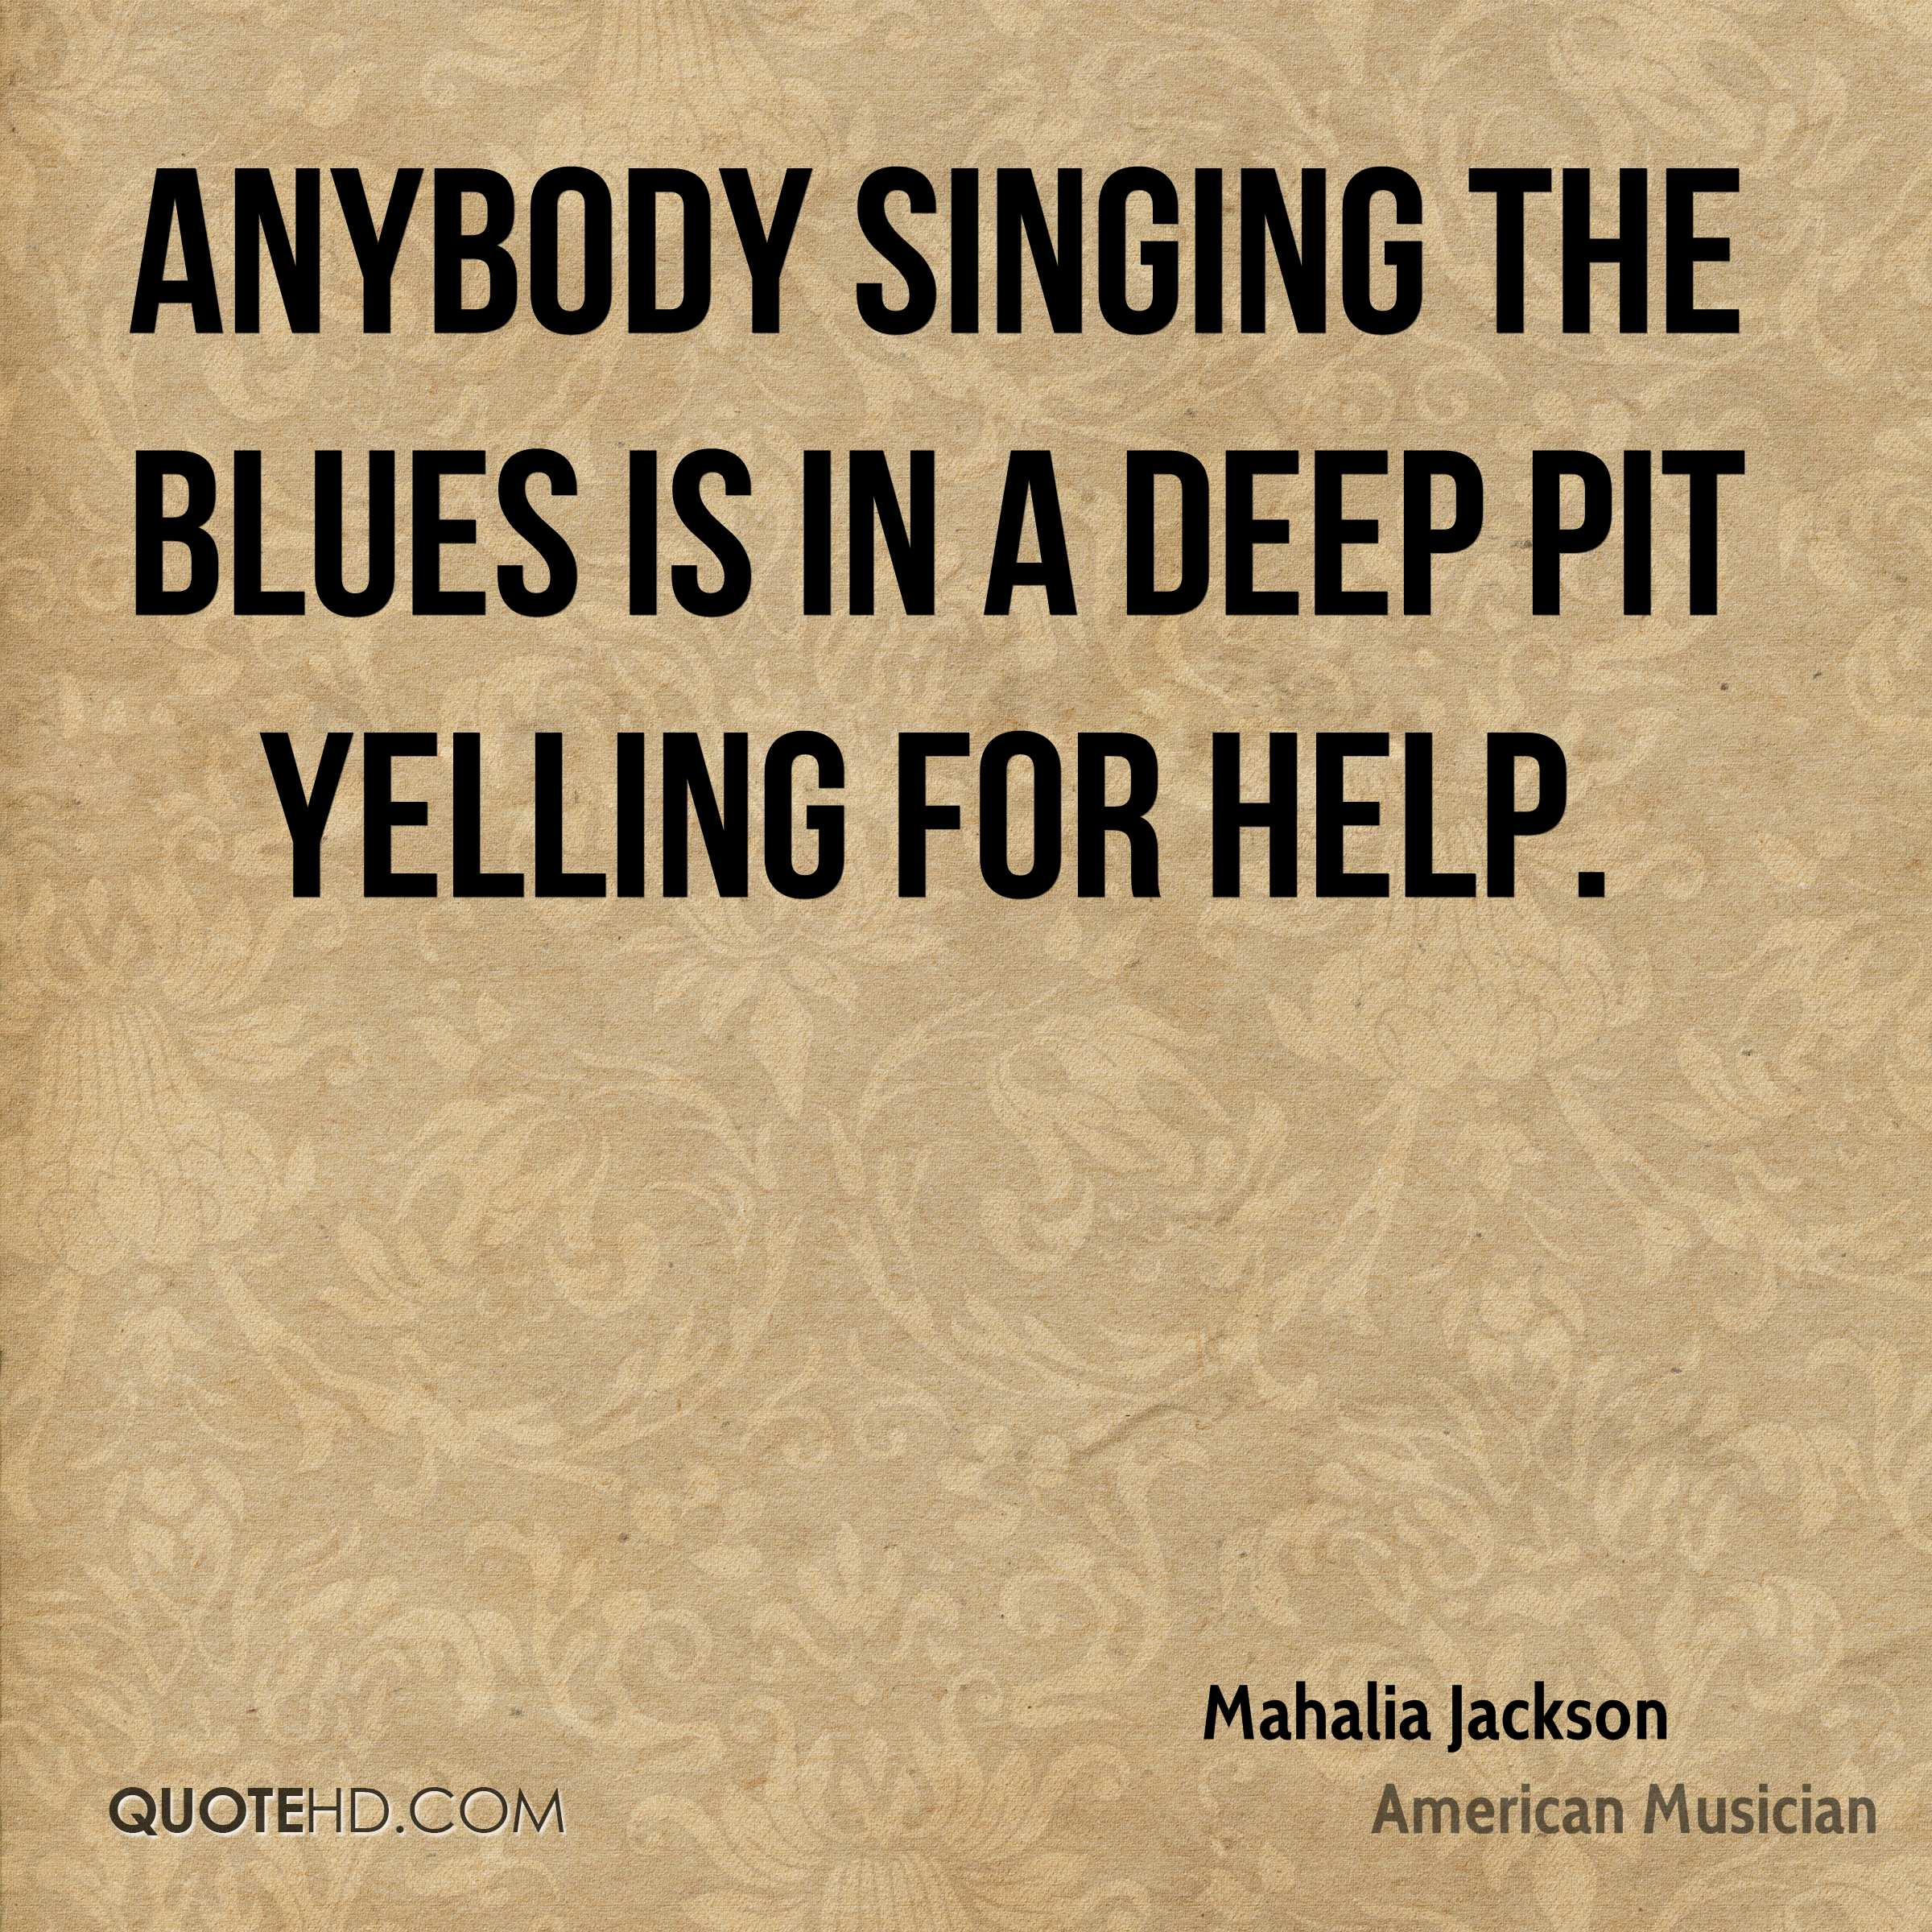 Anybody singing the blues is in a deep pit yelling for help.